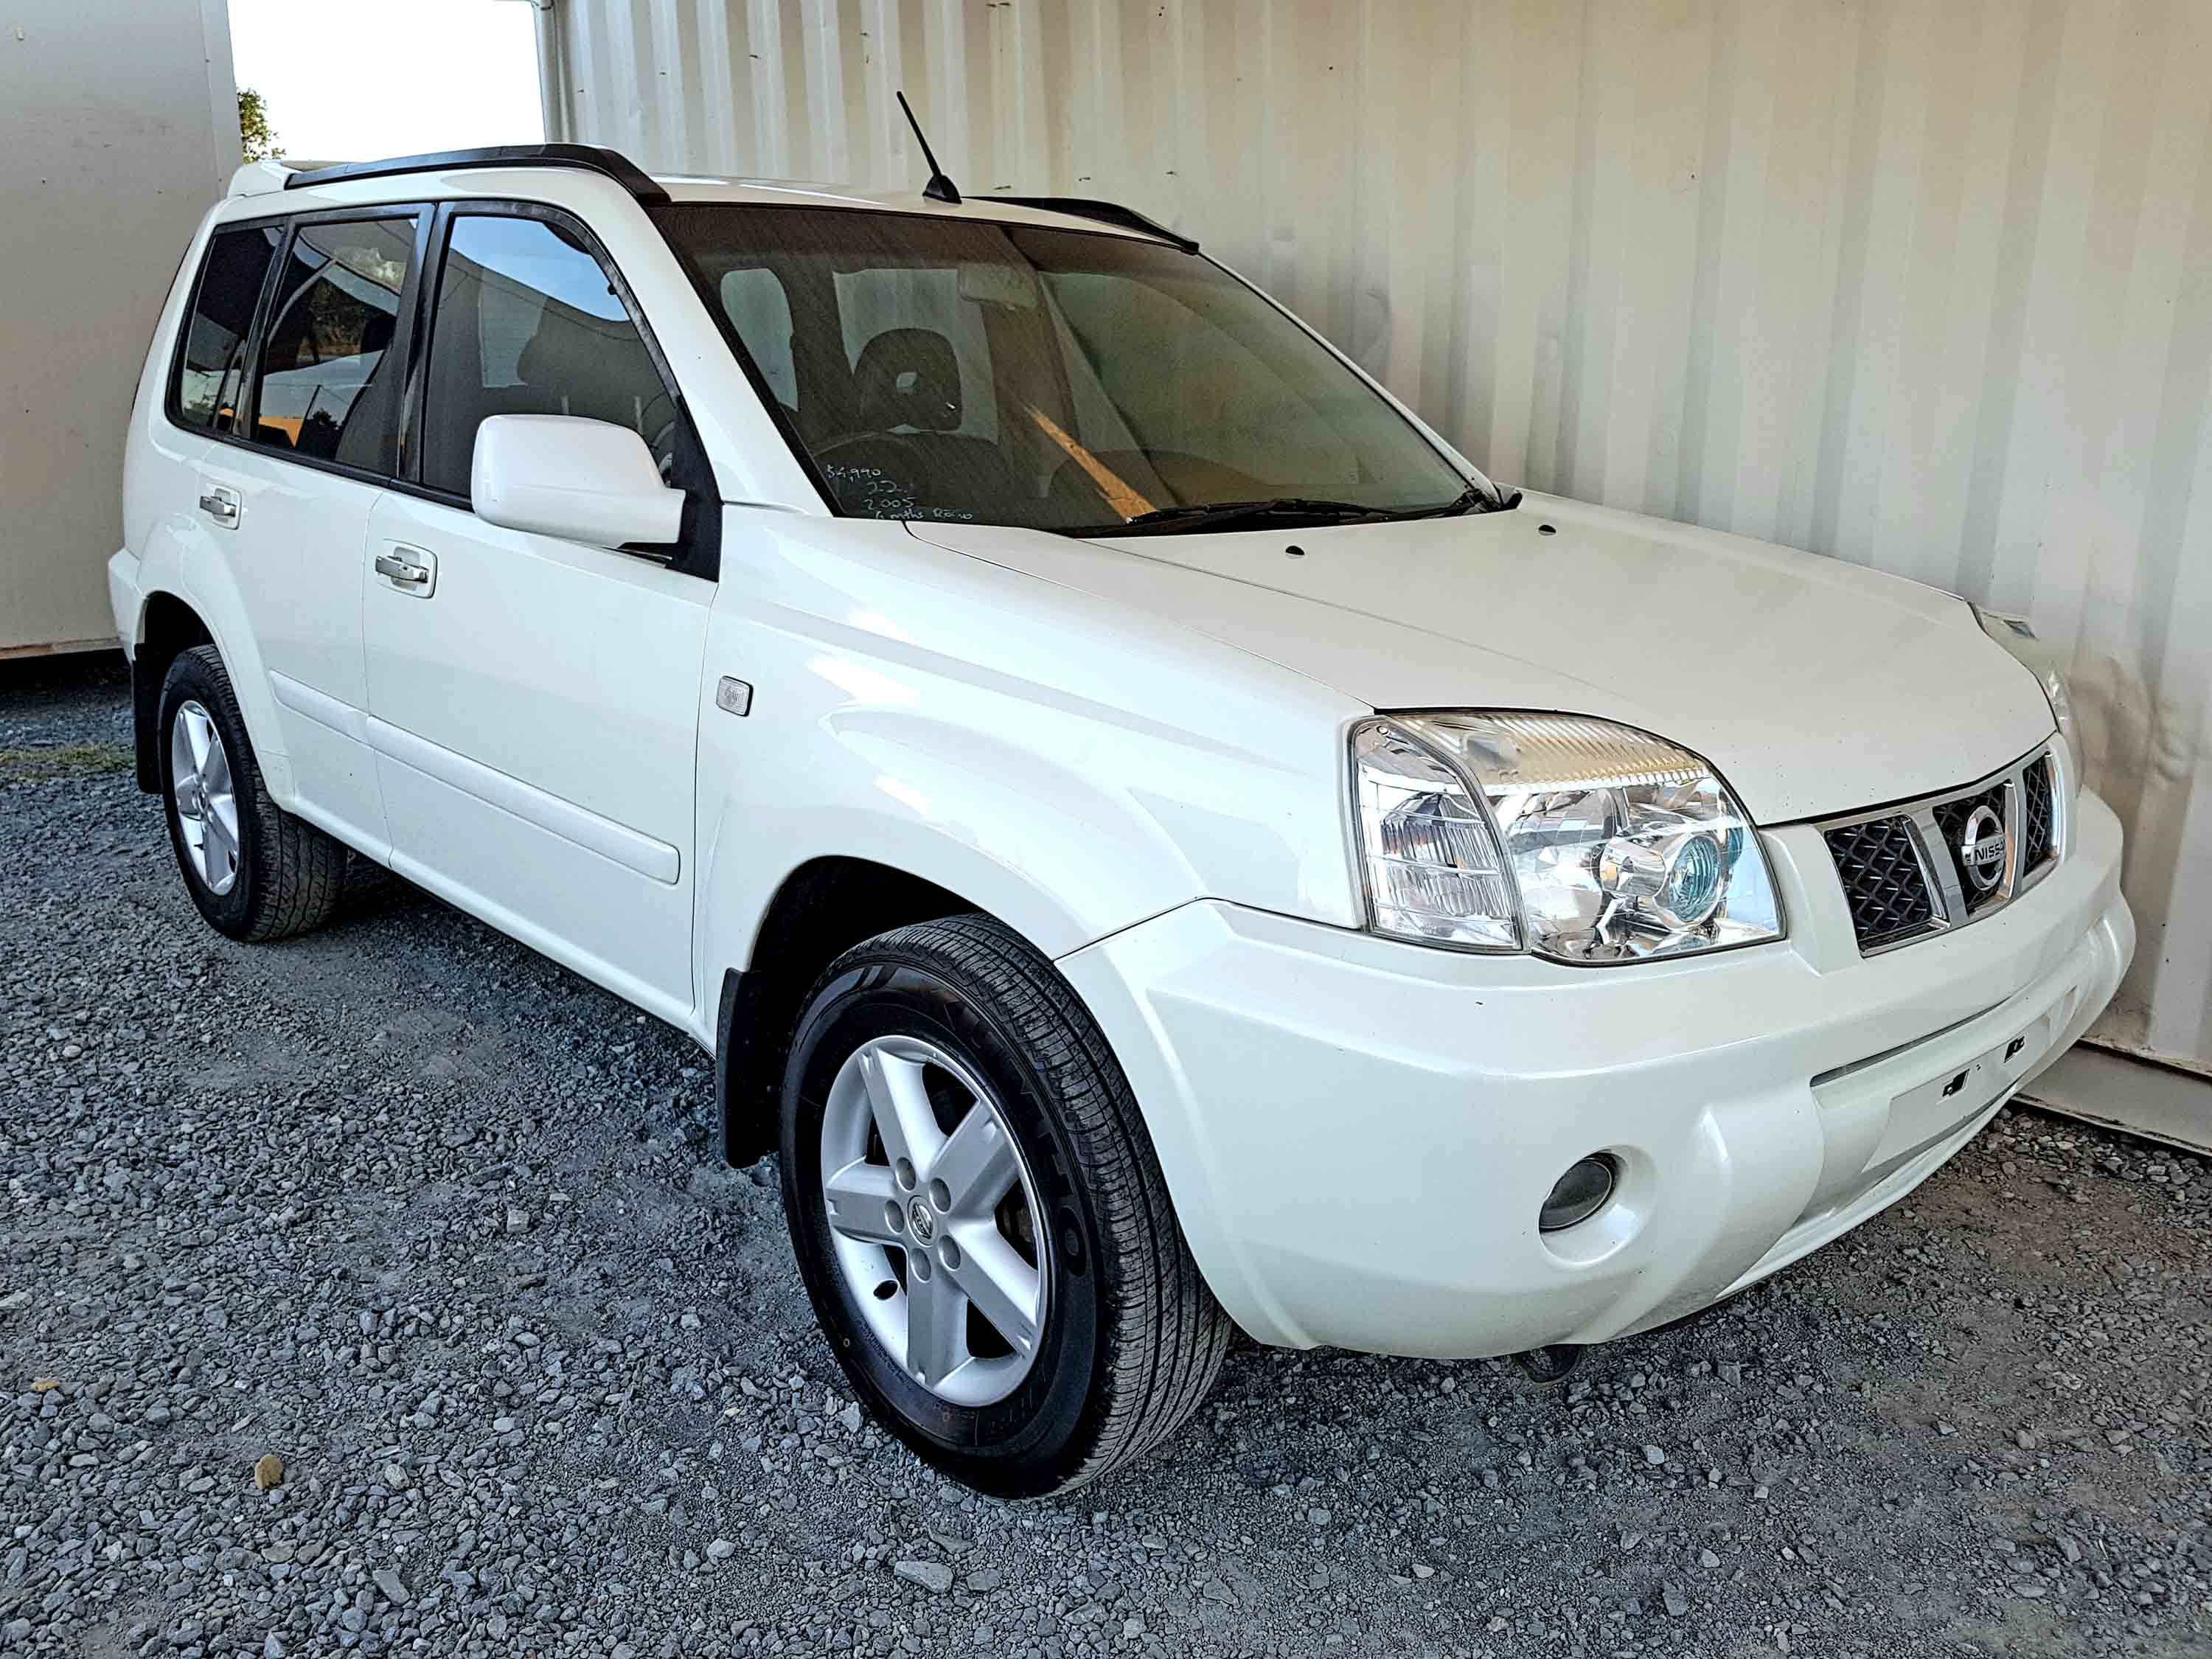 automatic 4x4 suv nissan x trail ti 2005 white used vehicle sales. Black Bedroom Furniture Sets. Home Design Ideas